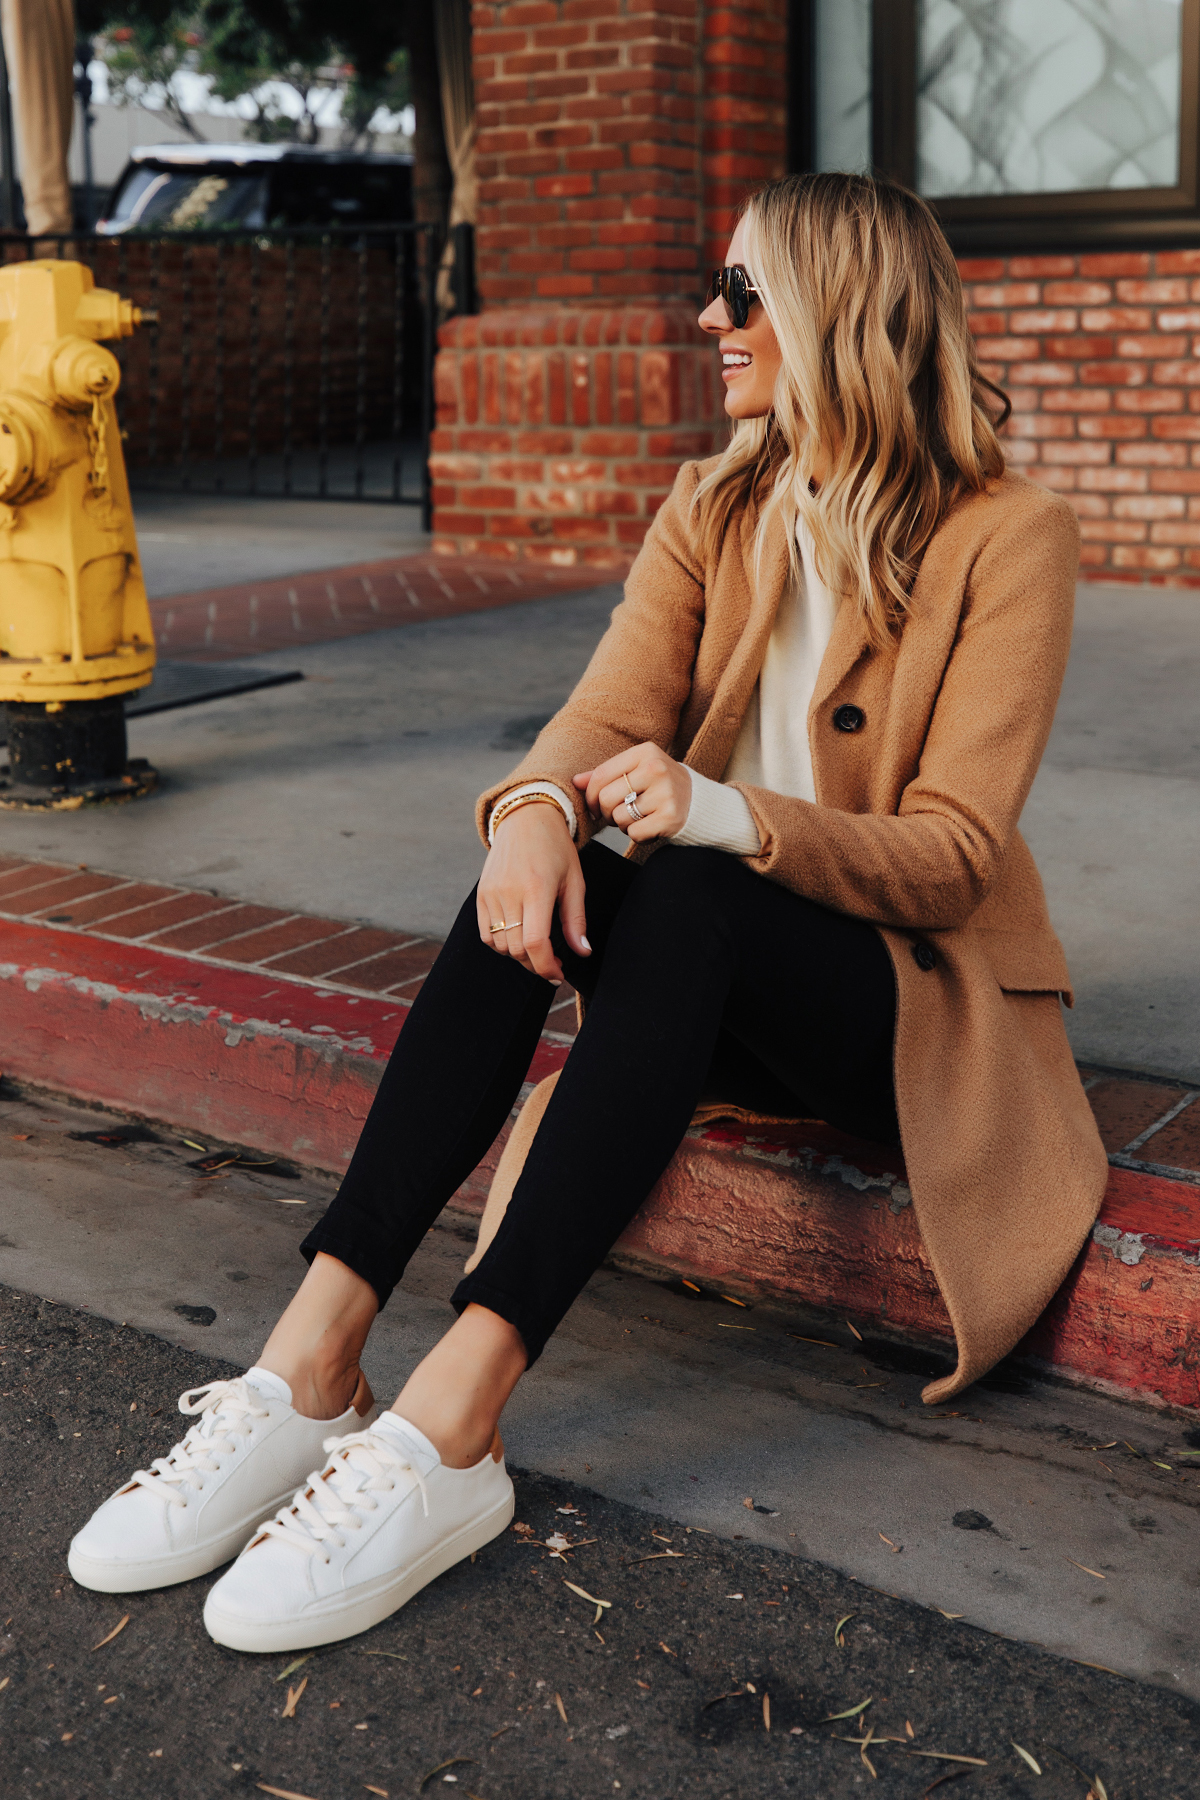 Fashion Jackson Wearing Ann Taylor Camel Coat Black Skinny Jeans White Sneakers